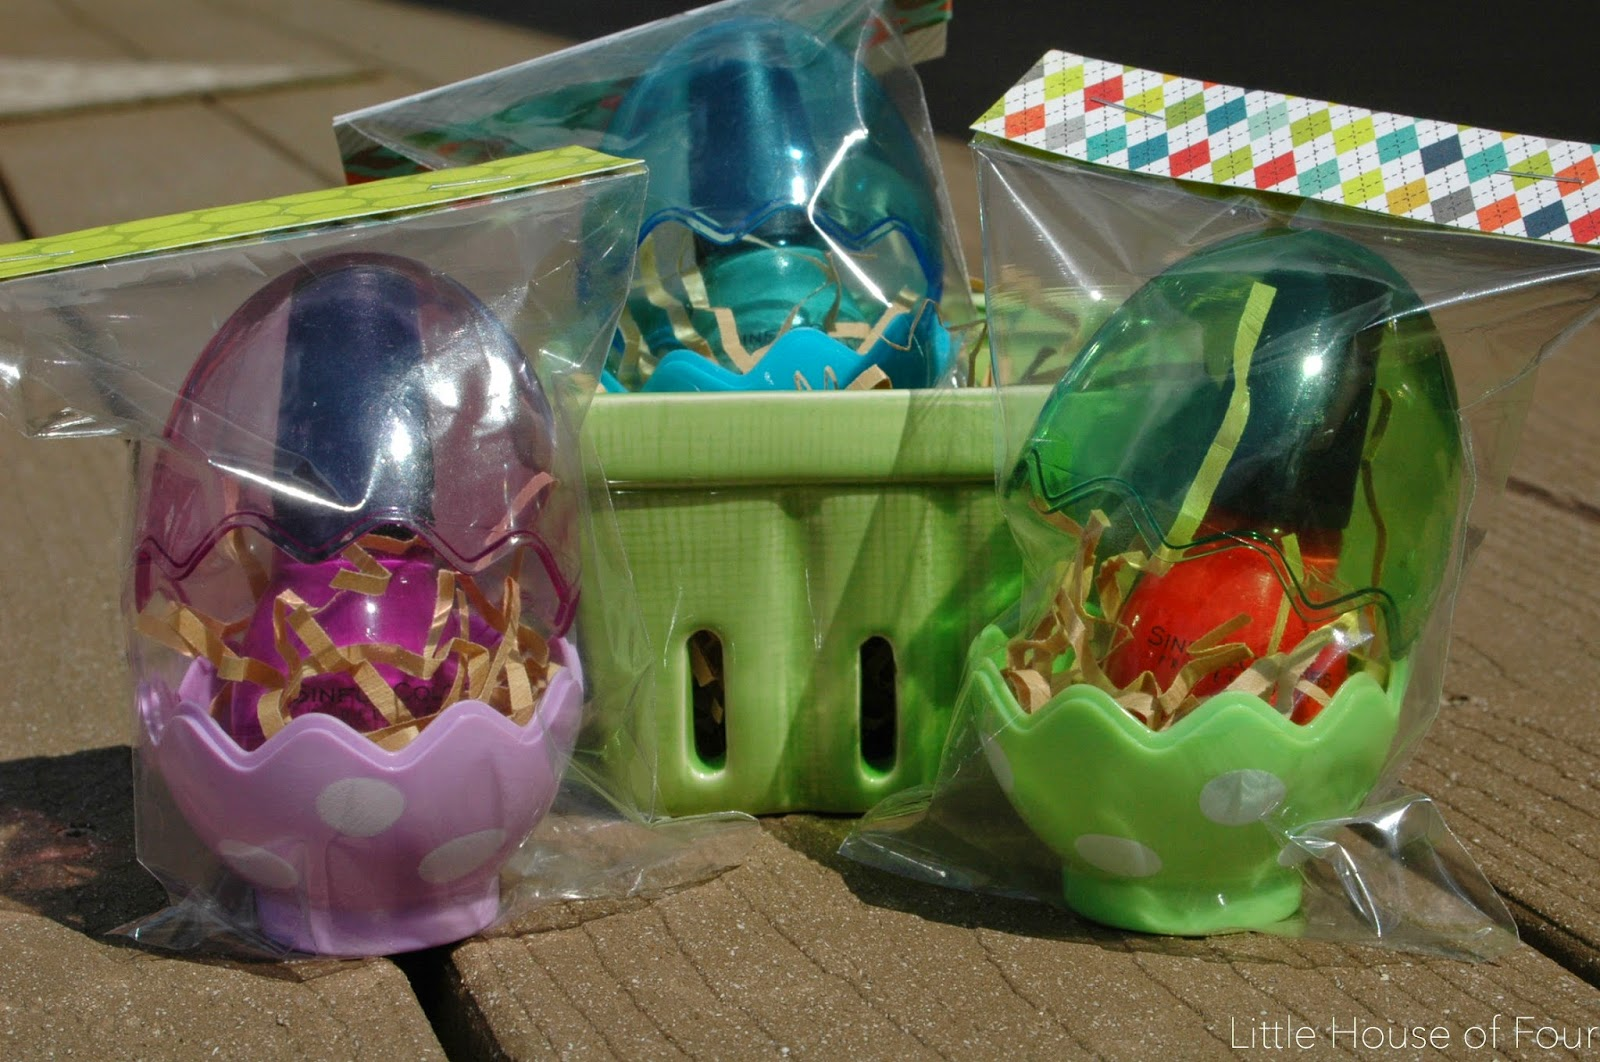 30 easter basket ideas besides candy little house of four 30 easter basket ideas besides candy negle Choice Image